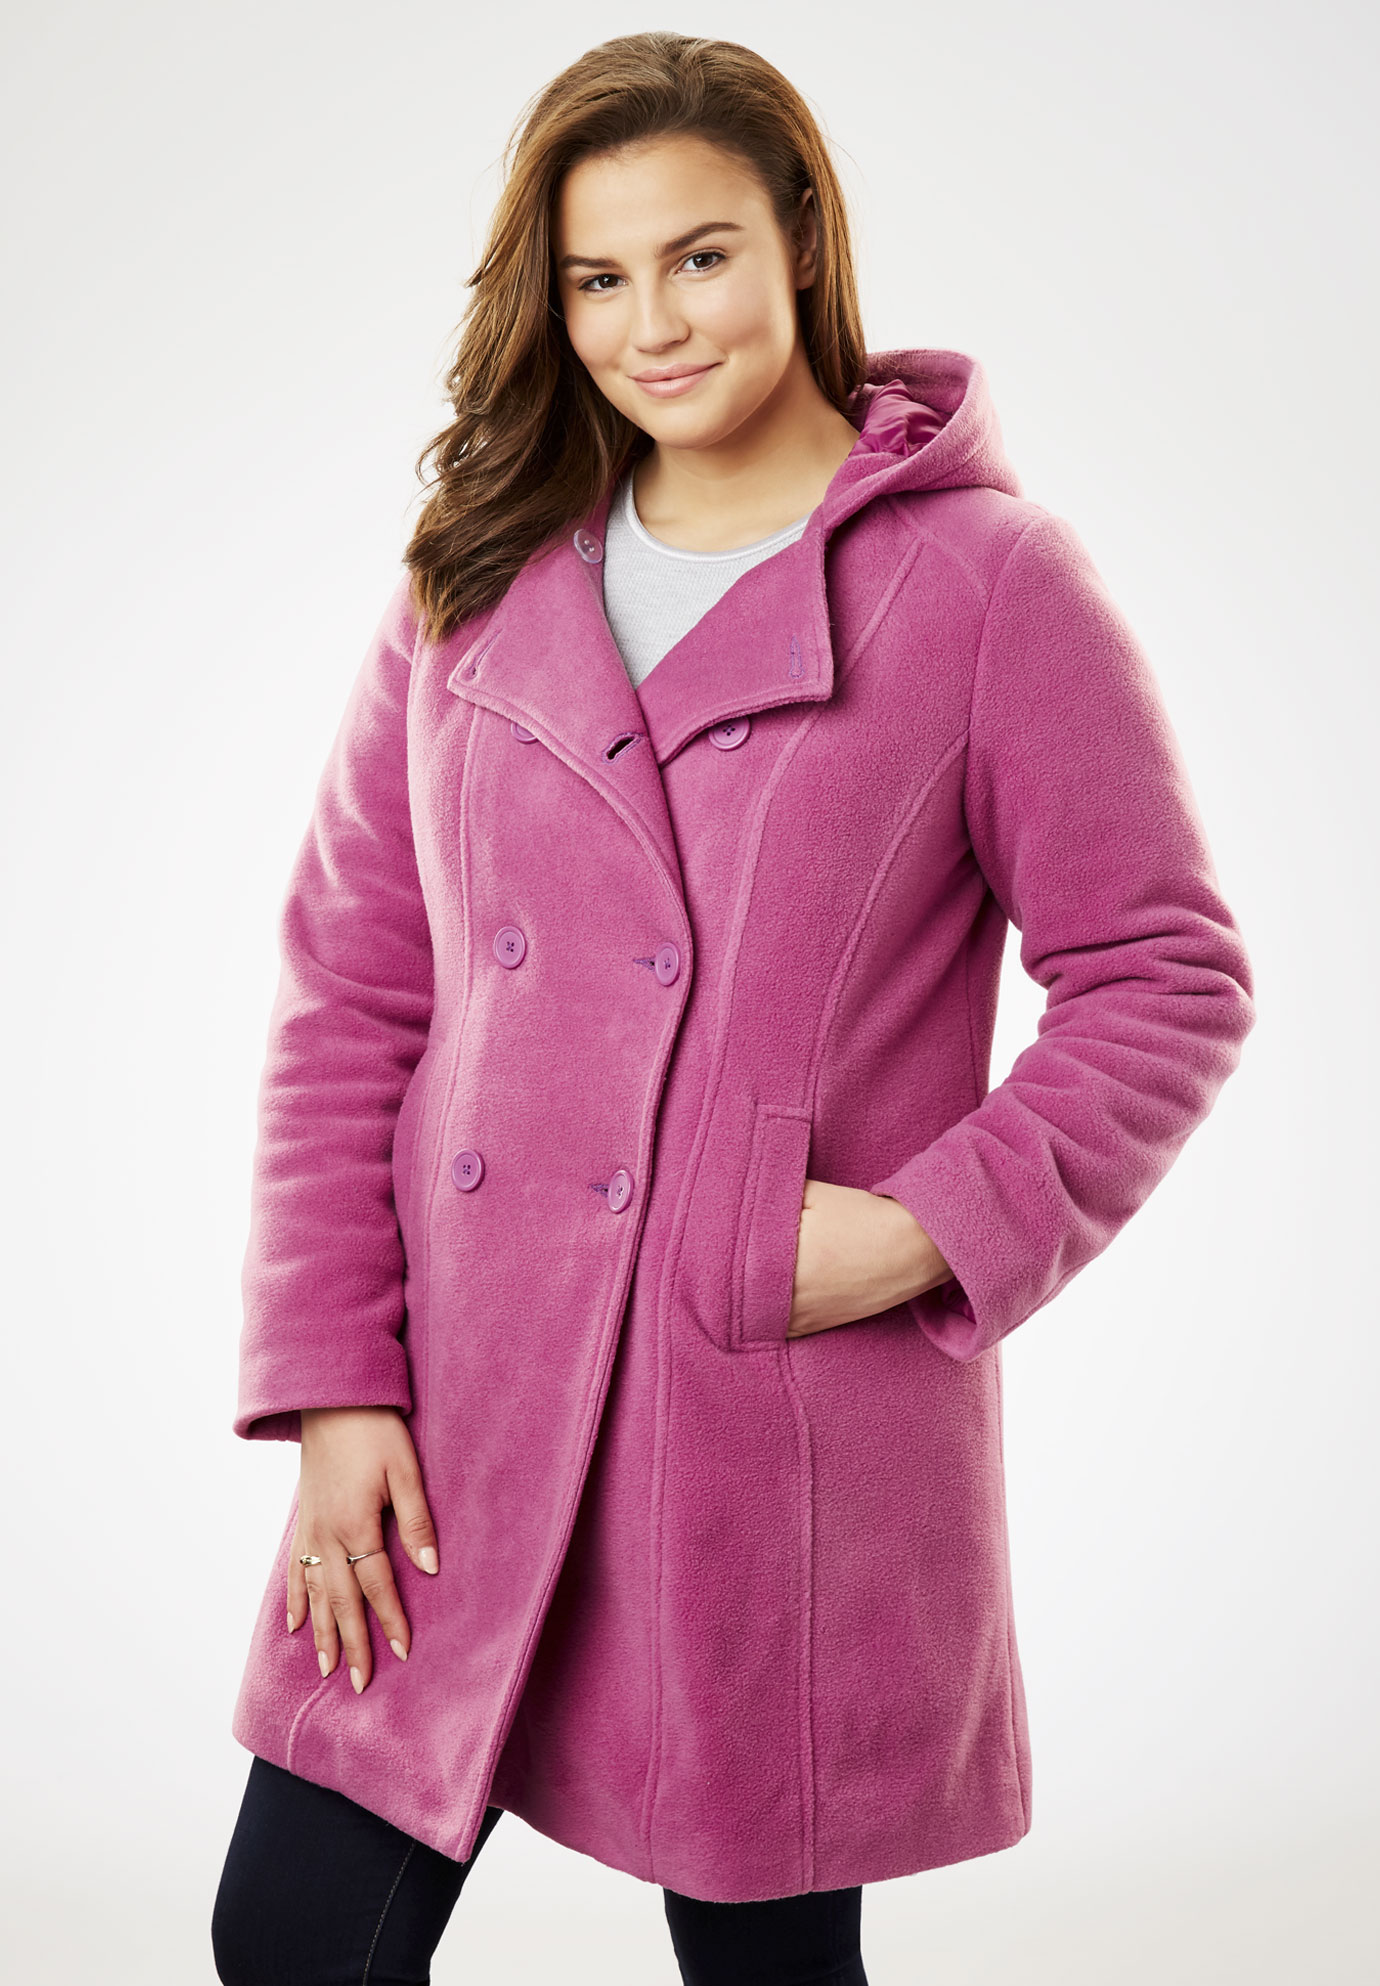 c56b0d842f7 Double-Breasted Hooded Fleece Peacoat